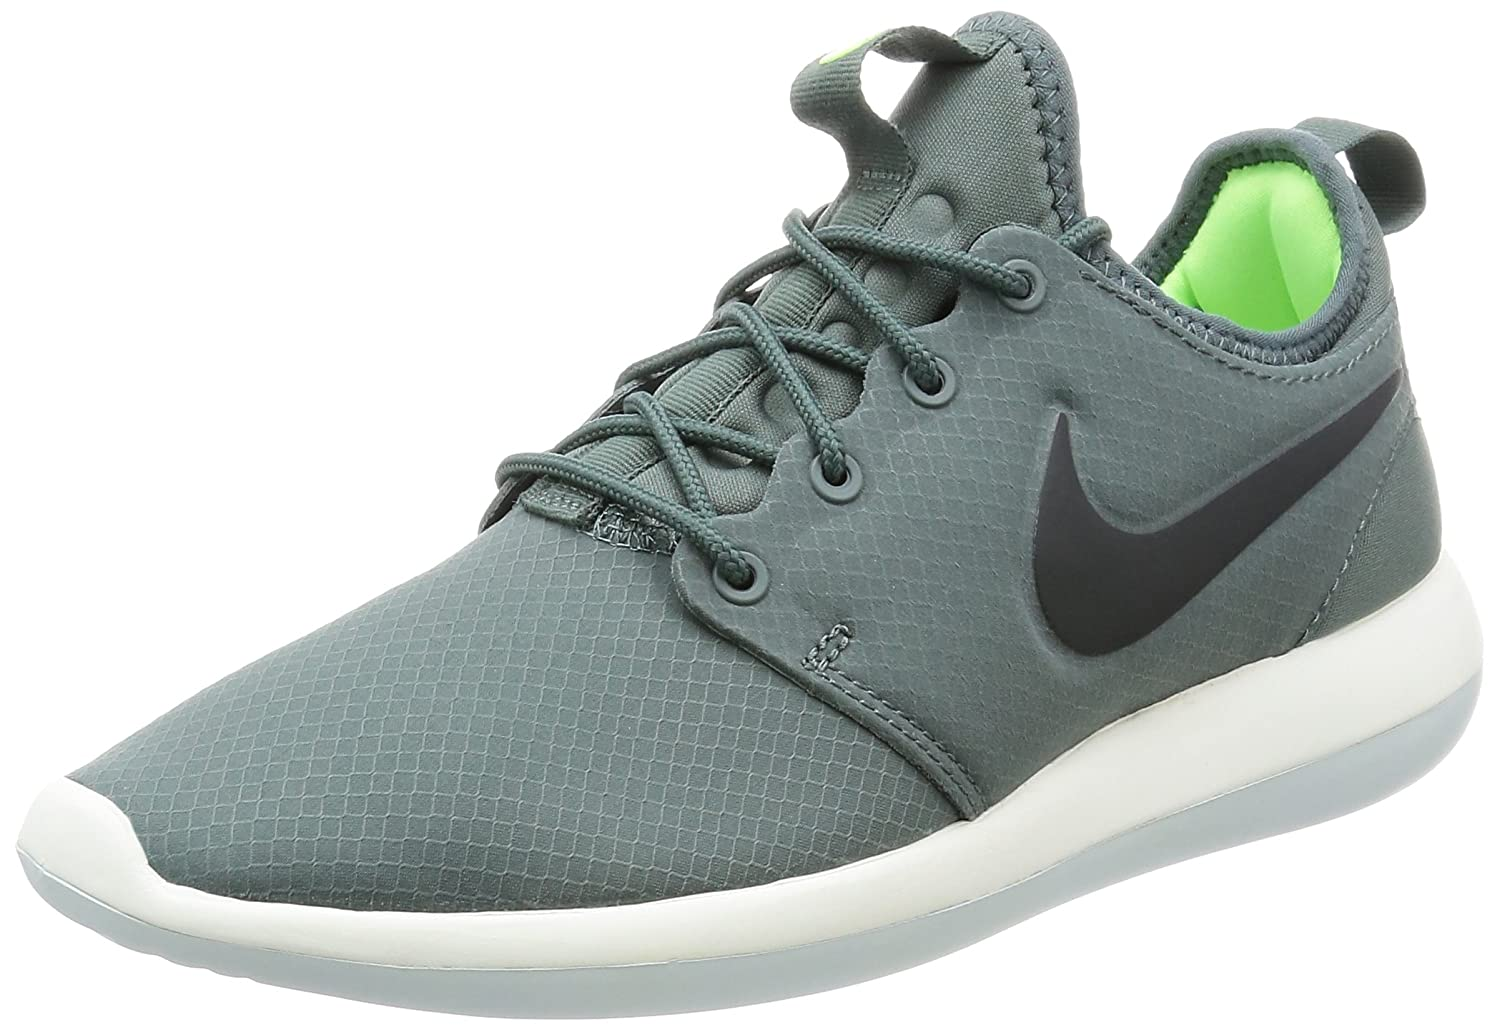 promo code 0bc9e 94cd3 Amazon.com | Nike Men's Roshe Two SE Casual Shoe (9.5, Hasta ...